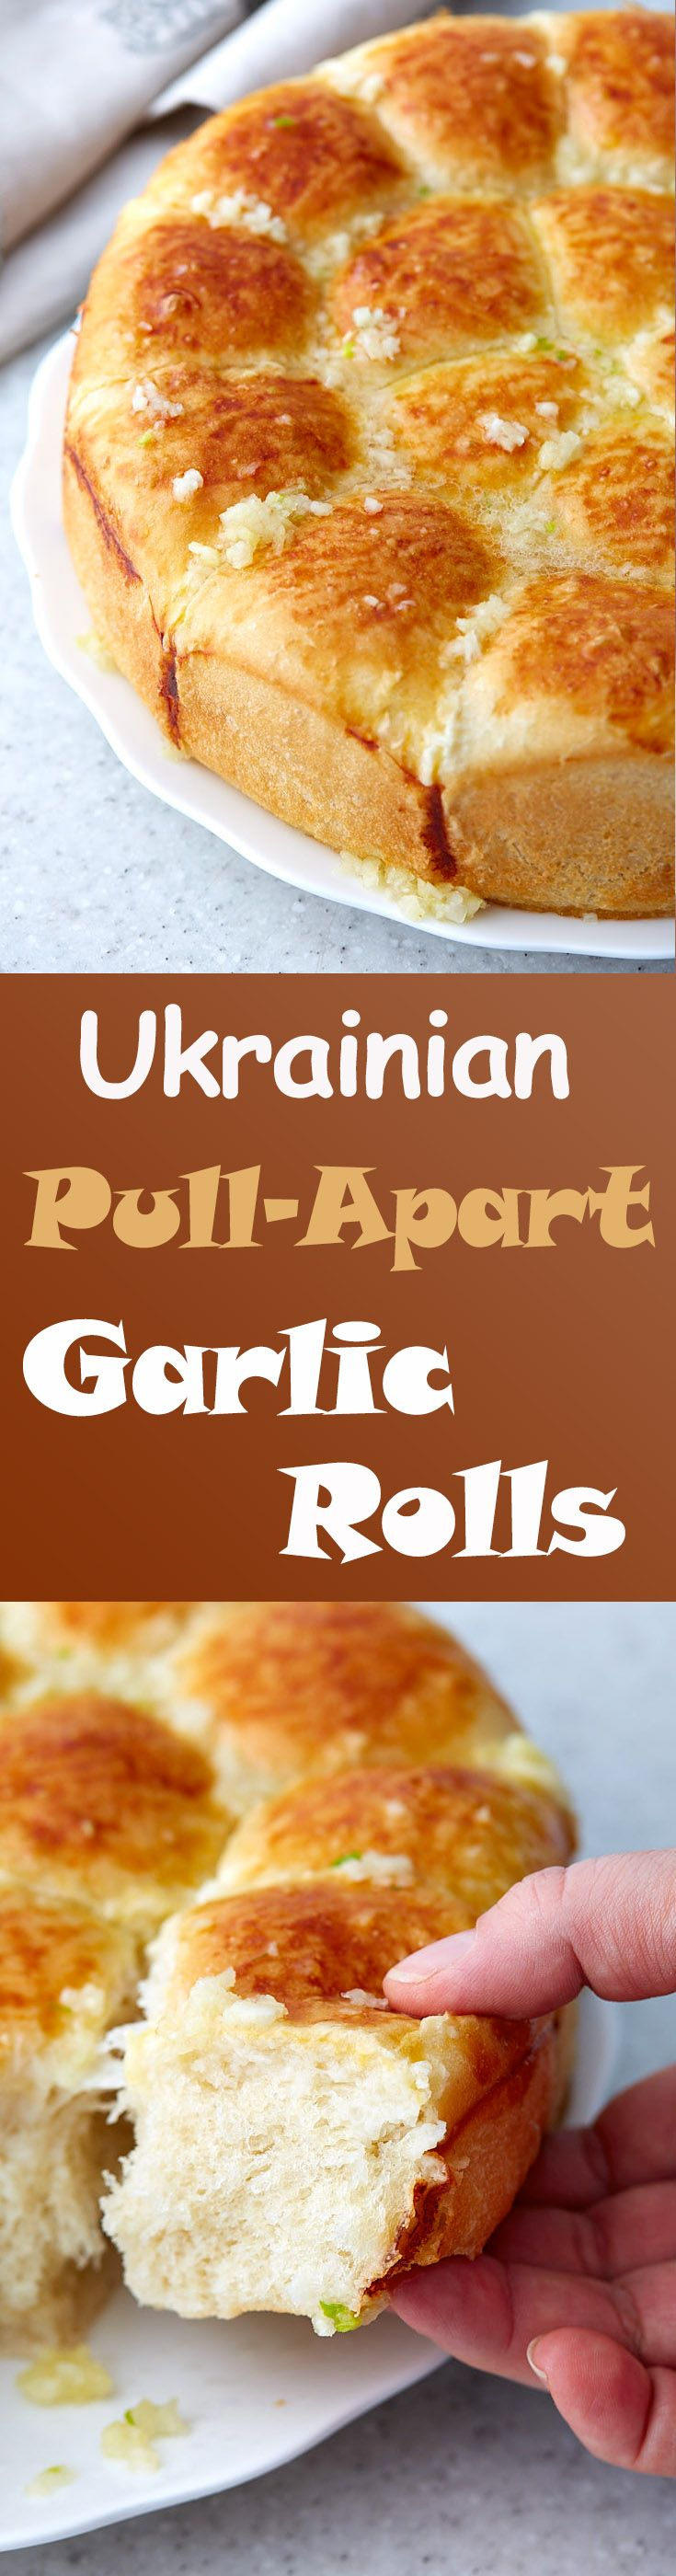 These pull-apart garlic rolls are soft, flavorful and are very easy to prepare. They are a great addition to lunch or dinner. Delicious and addictive!